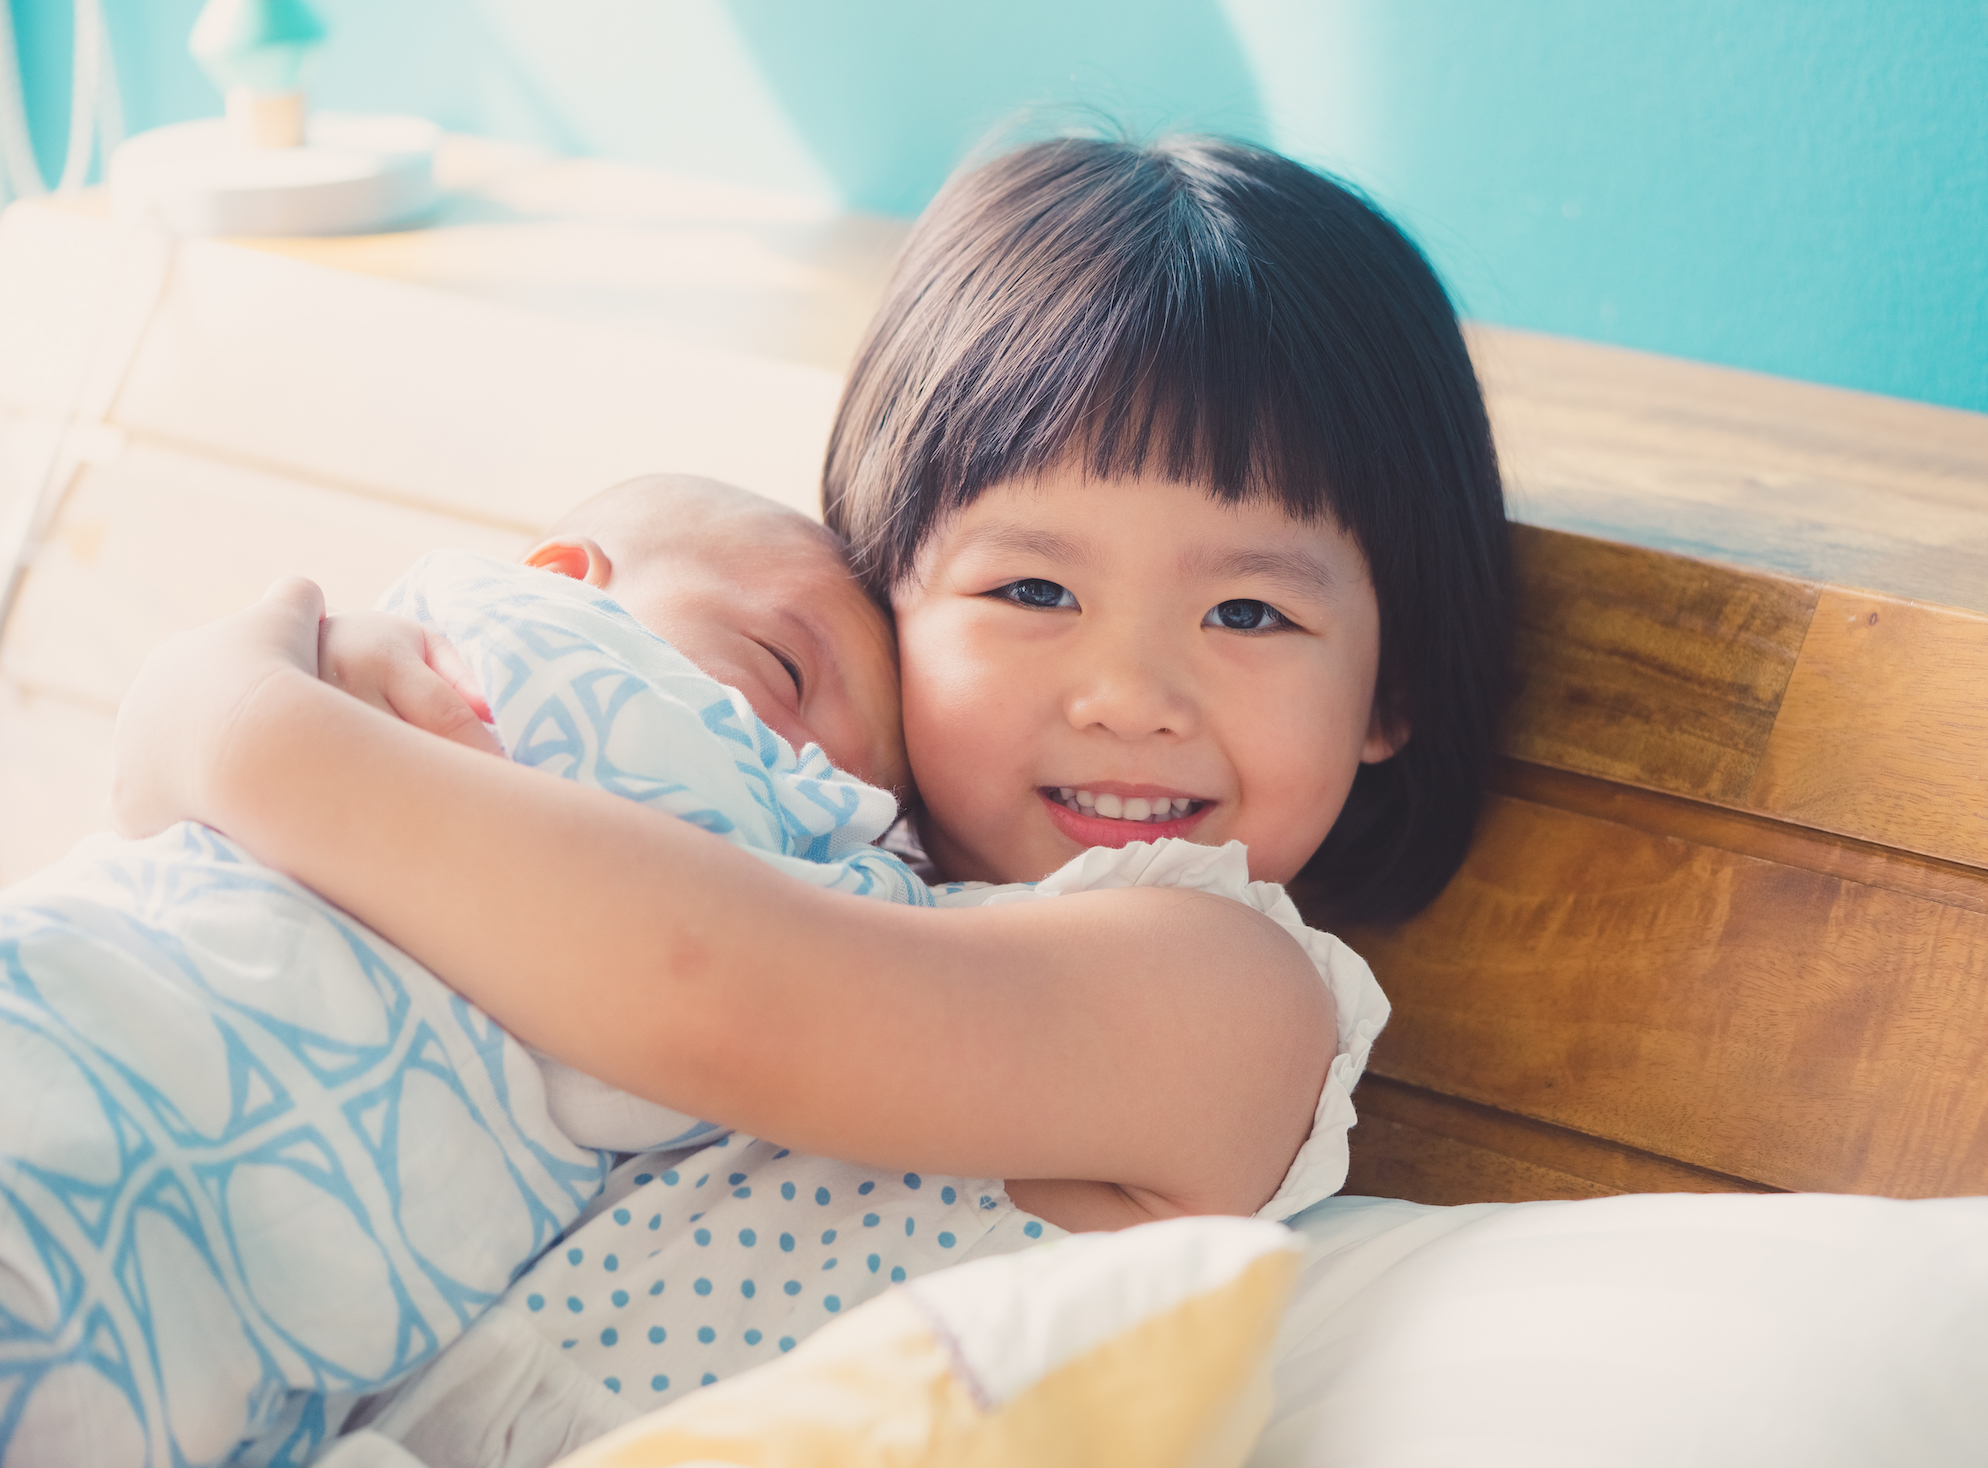 A new study has found that younger siblings can also make a positive contribution as their older brothers and sisters develop empathy.